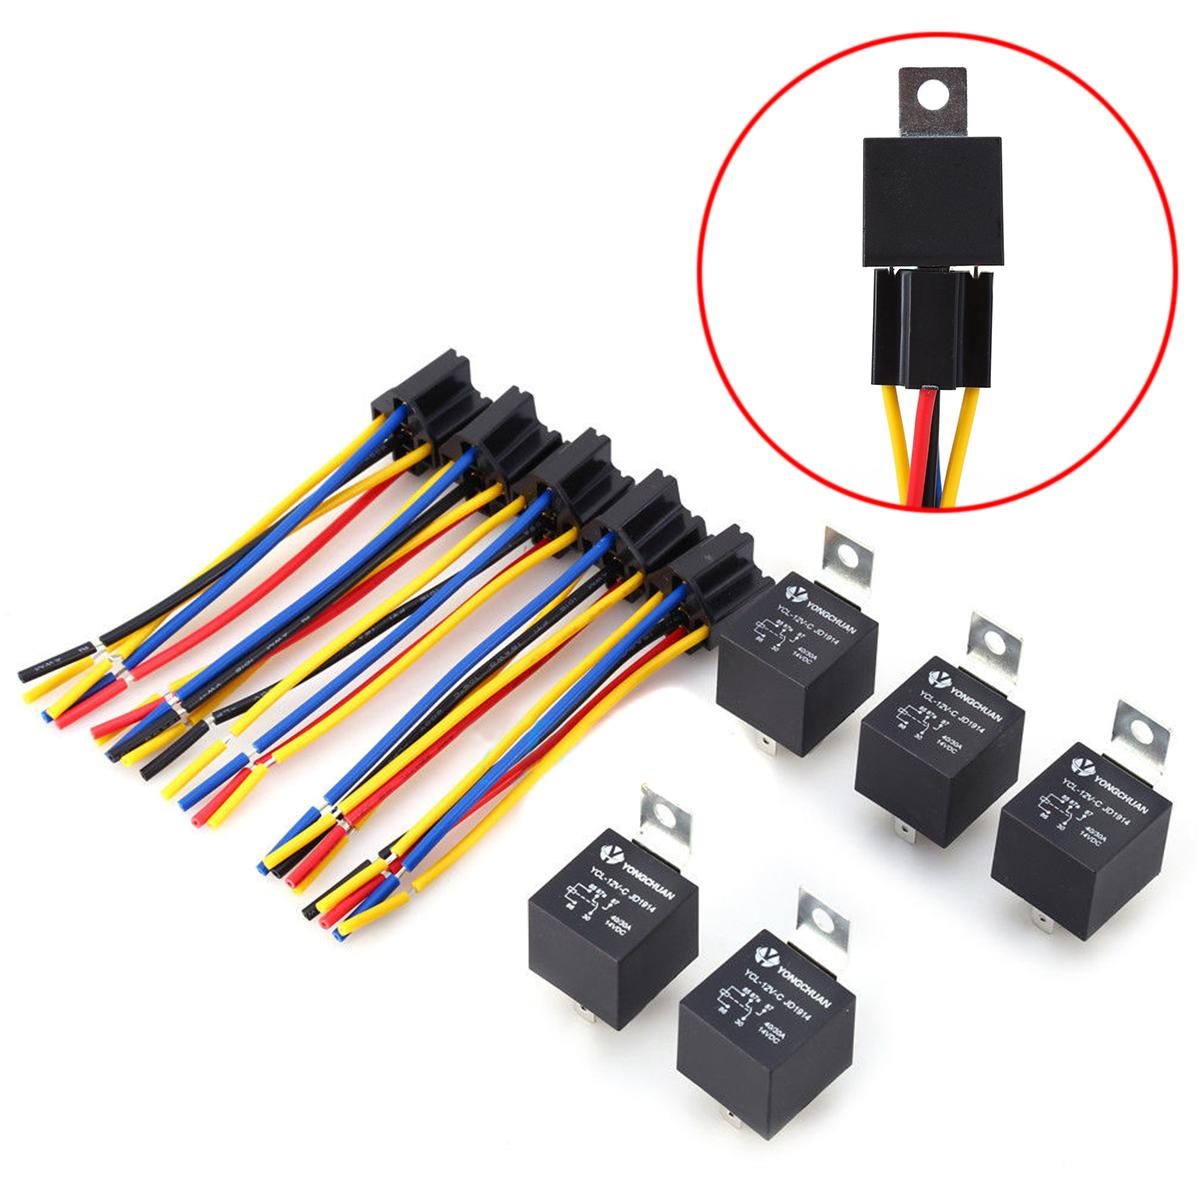 hight resolution of 2019 dc 12v 40a amp relay socket spdt 5 pin 5 wire ycl 12v c 12v 30 40a 5pin automotive relays w dual socket 5 wire wiring